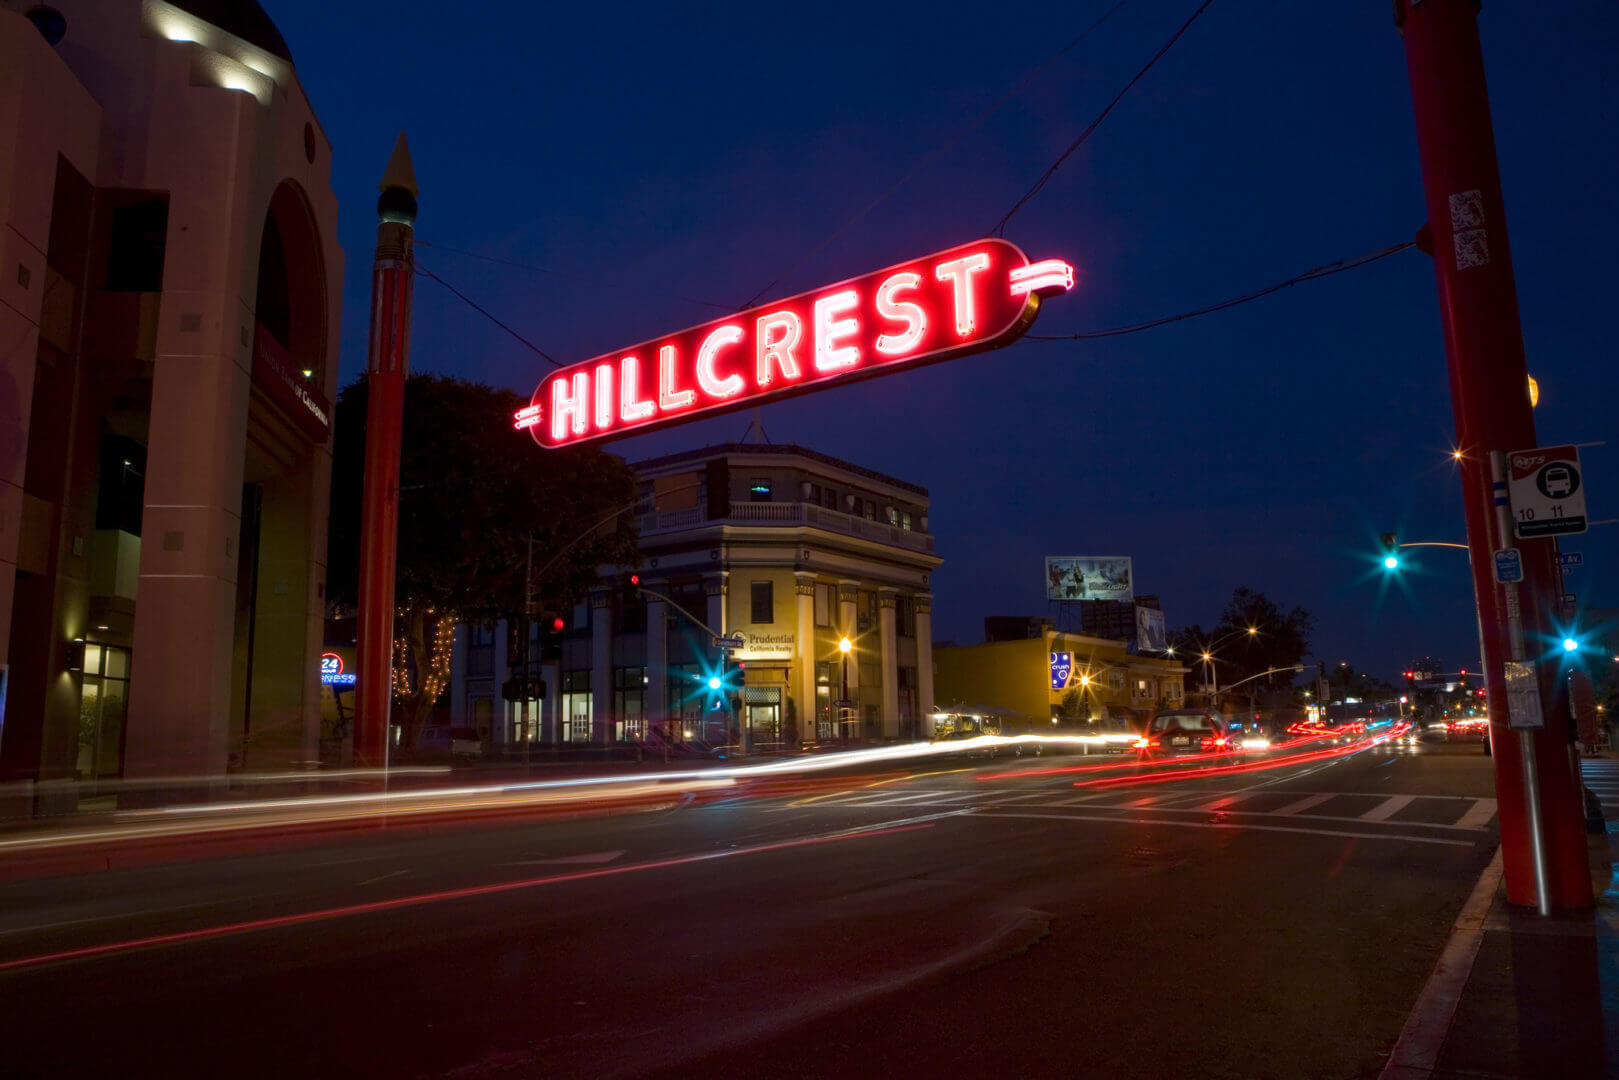 Hillcrest Movers Upload Moving Systems San Diego 92103